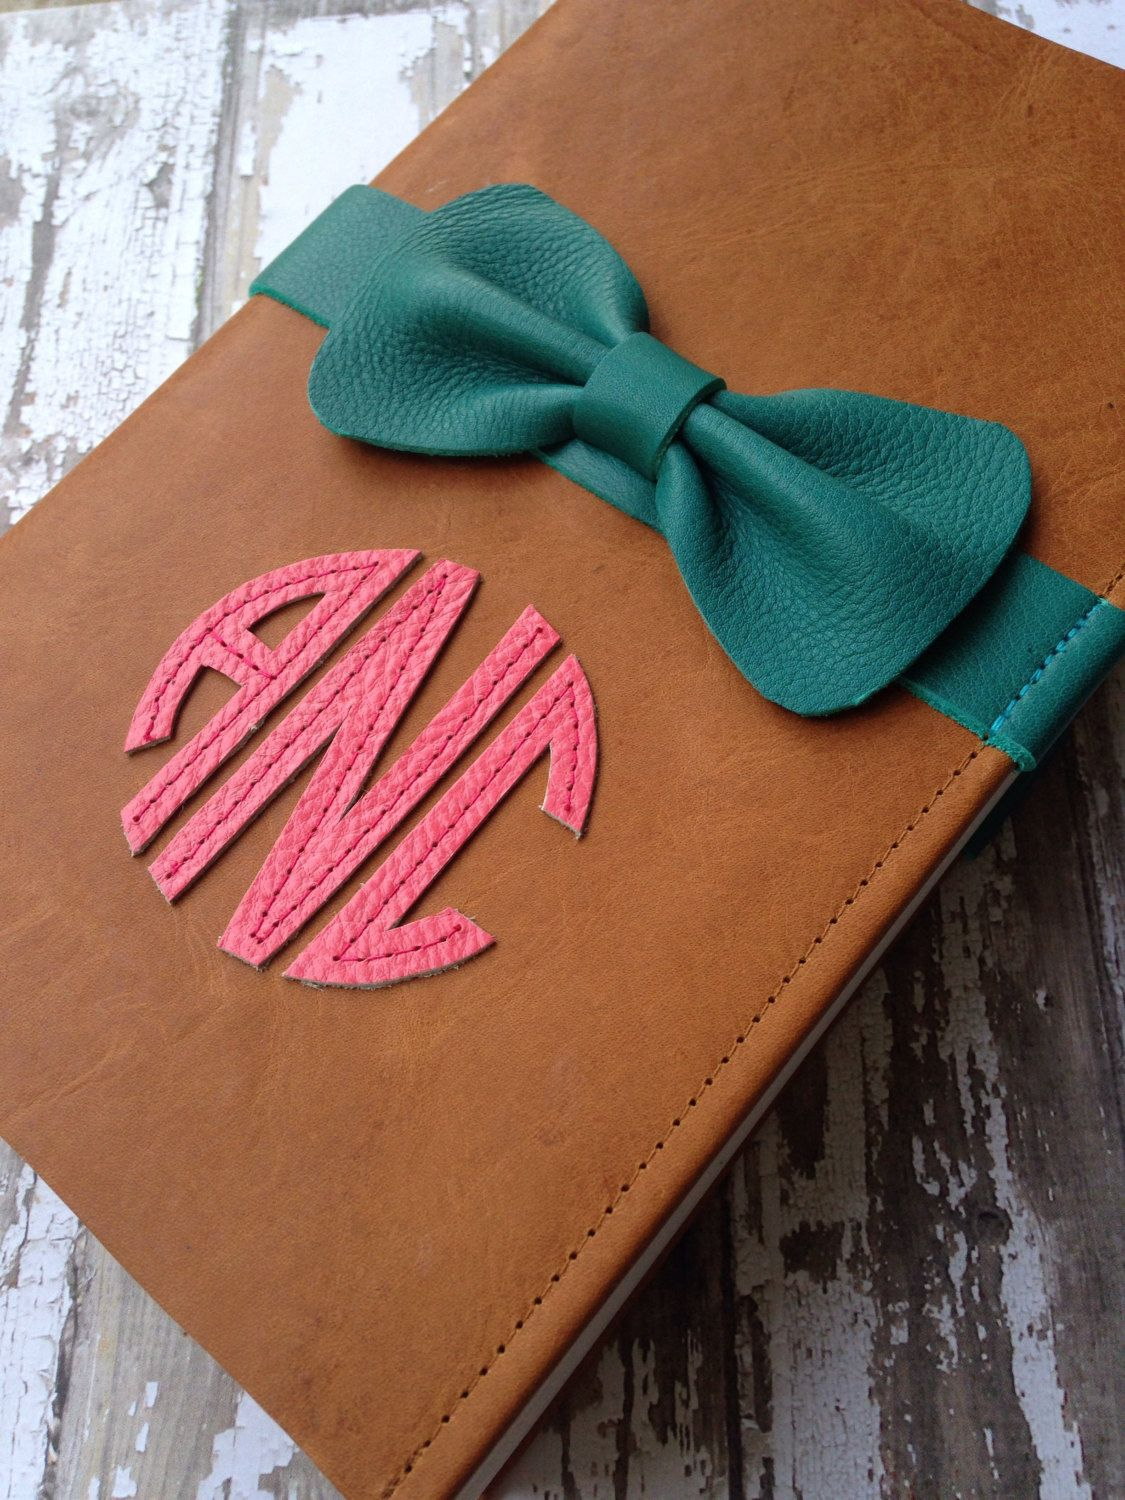 Monogrammed bow bible great idea for proposals newly weds baby monogrammed bow bible great idea for proposals newly weds baby dedications sorority gifts negle Image collections